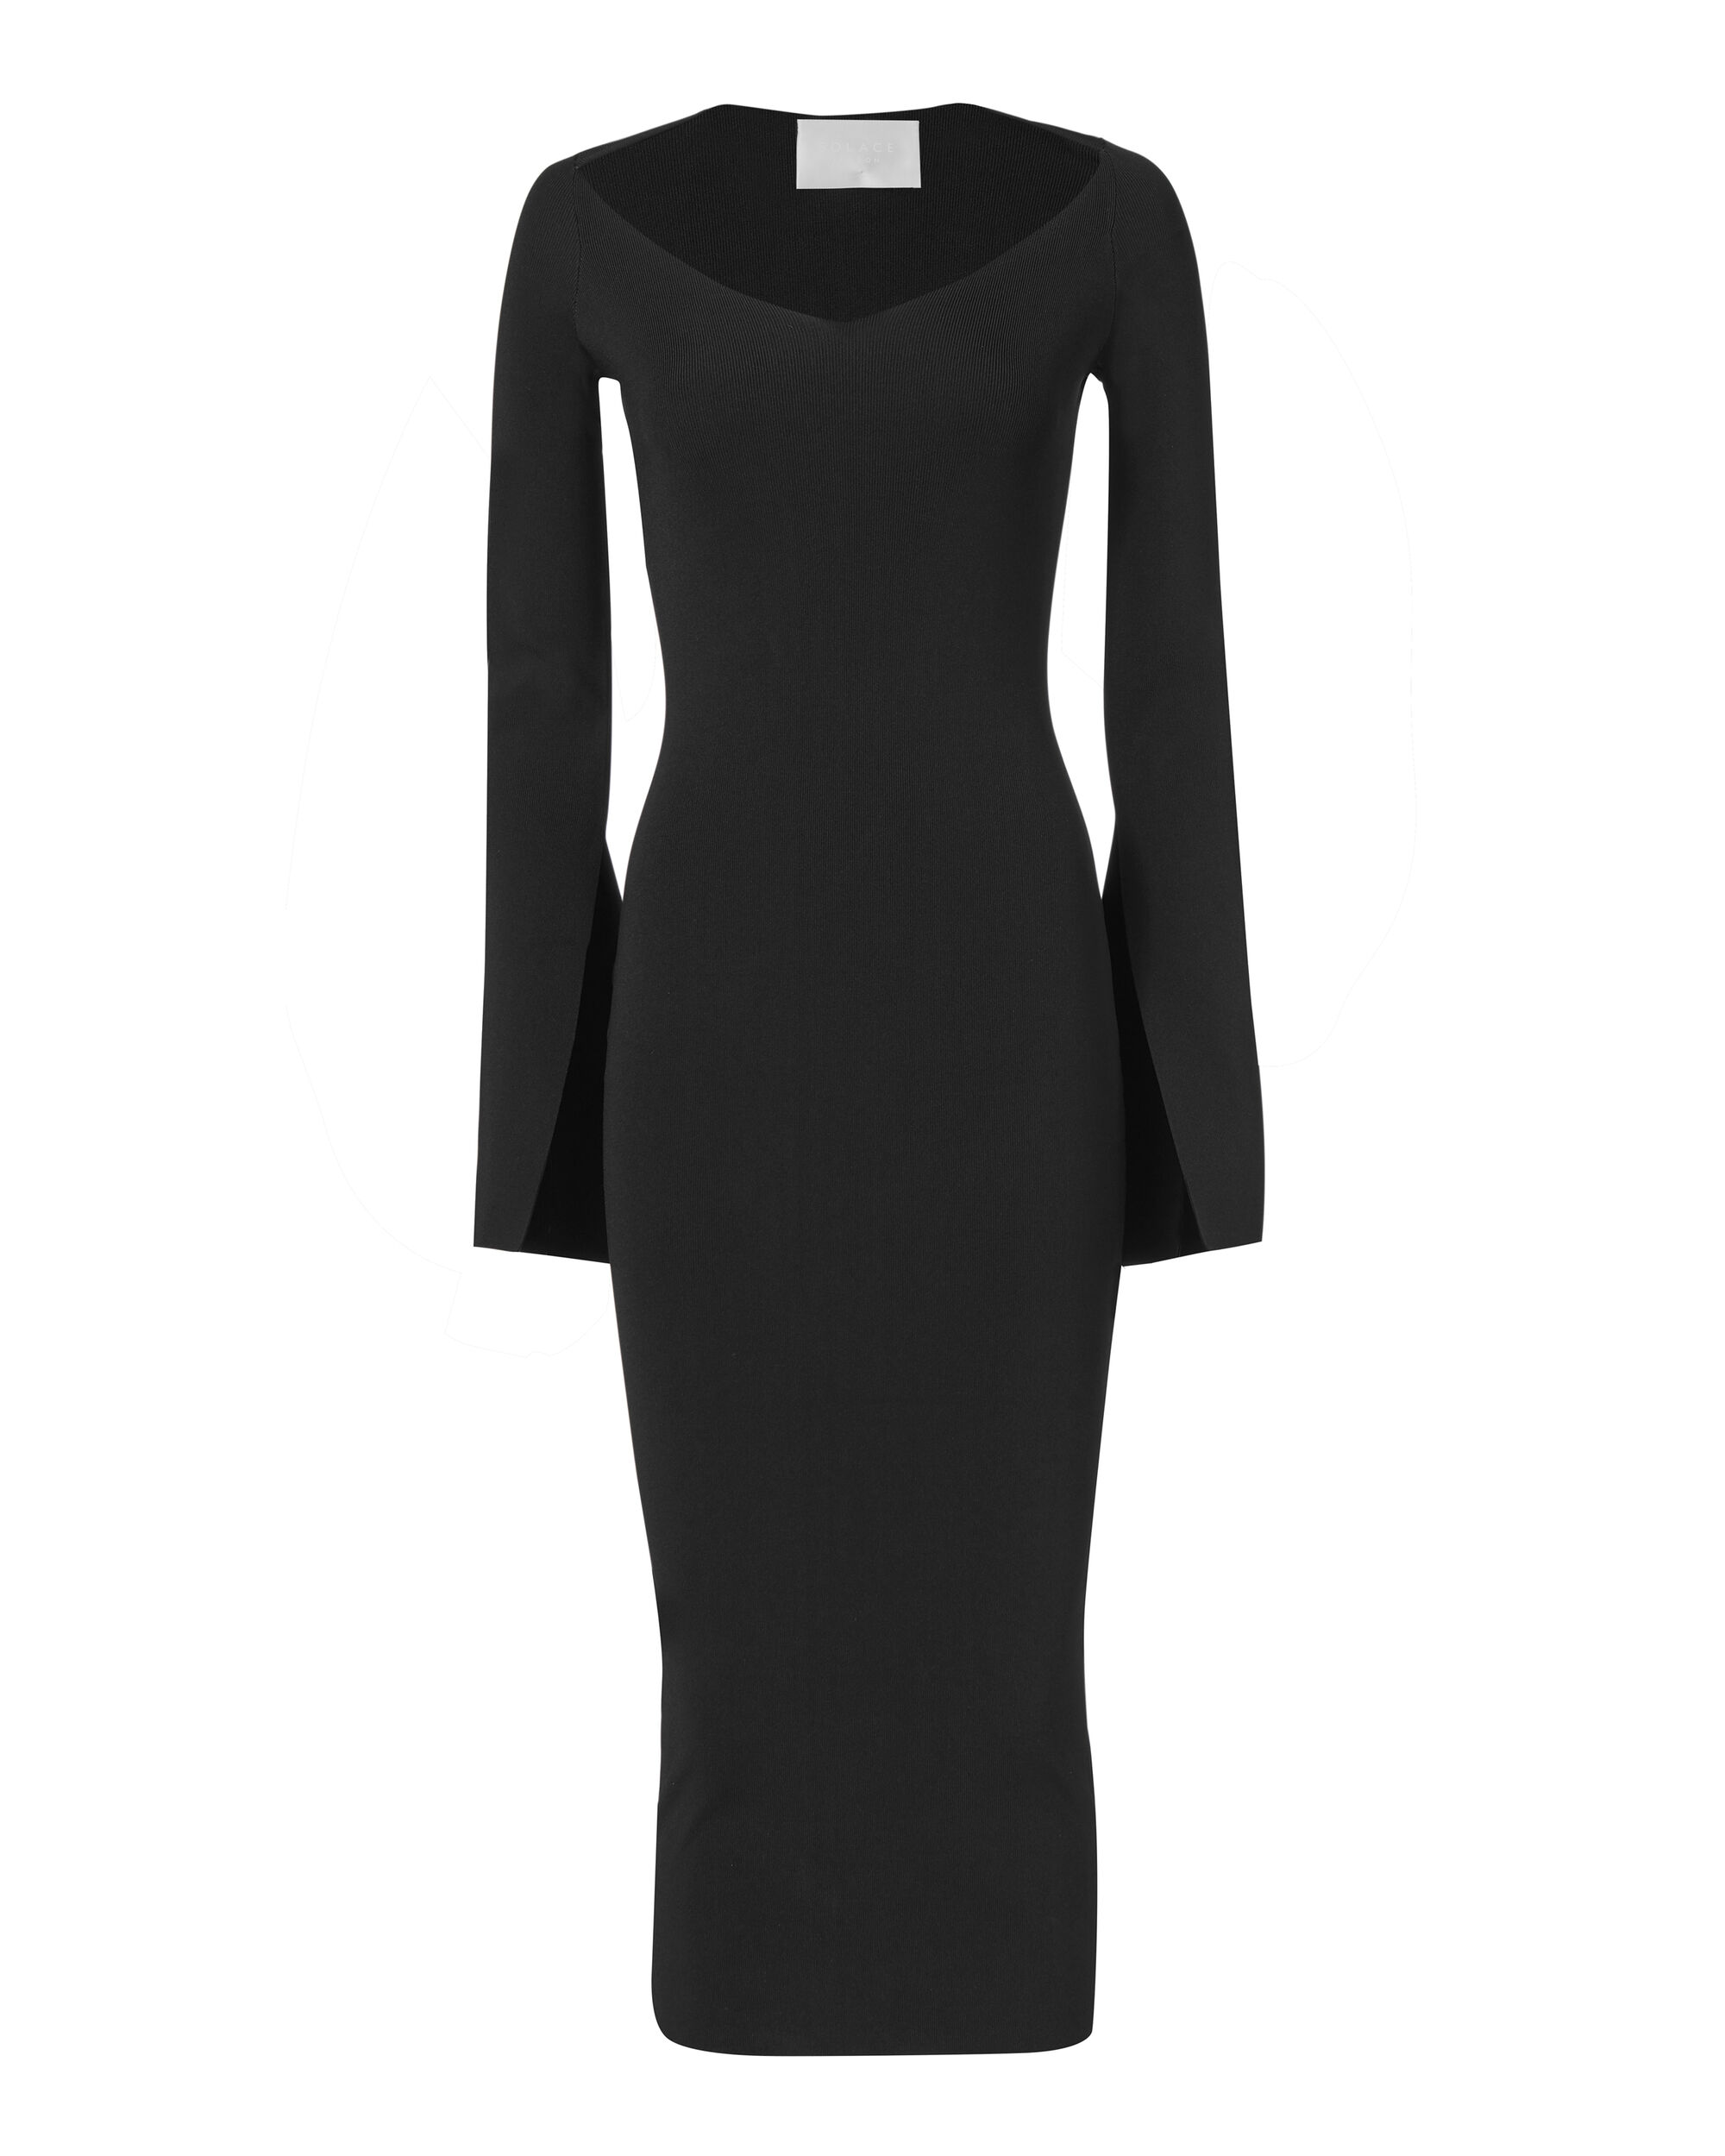 Sayen Black Midi Dress, BLACK, hi-res